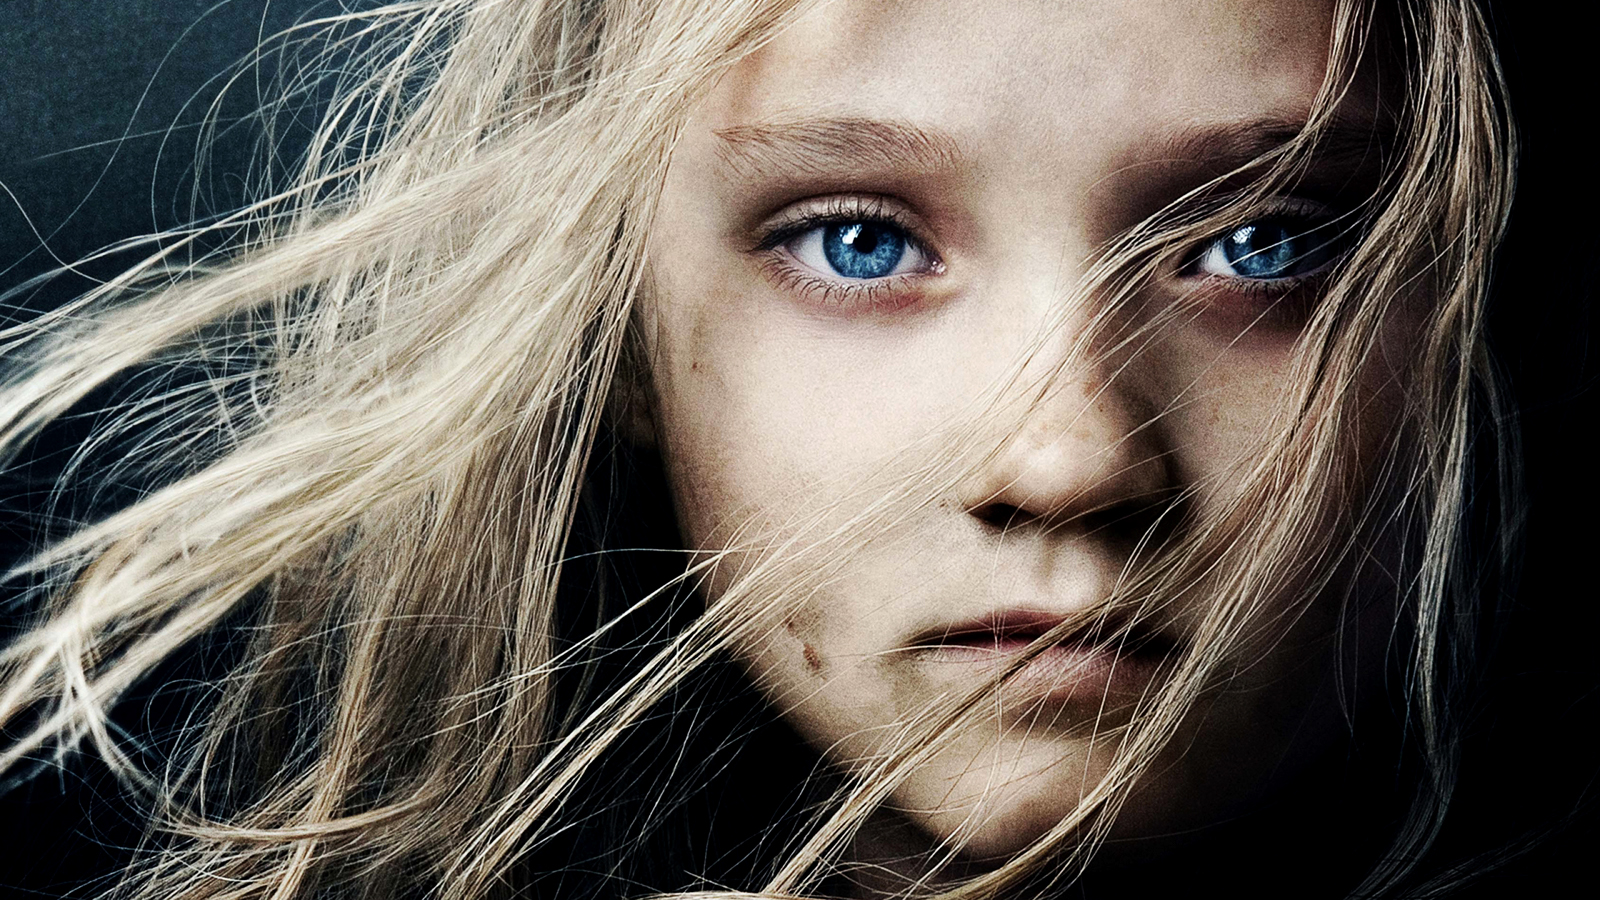 http://1.bp.blogspot.com/-vIFZ7mBvV_Y/ULskcn2gMaI/AAAAAAAAGaQ/HU4CZGvxB2c/s1600/Les-Miserables-Movie-Young-Cosette-HD-Wallpaper_Vvallpaper.Net.jpg